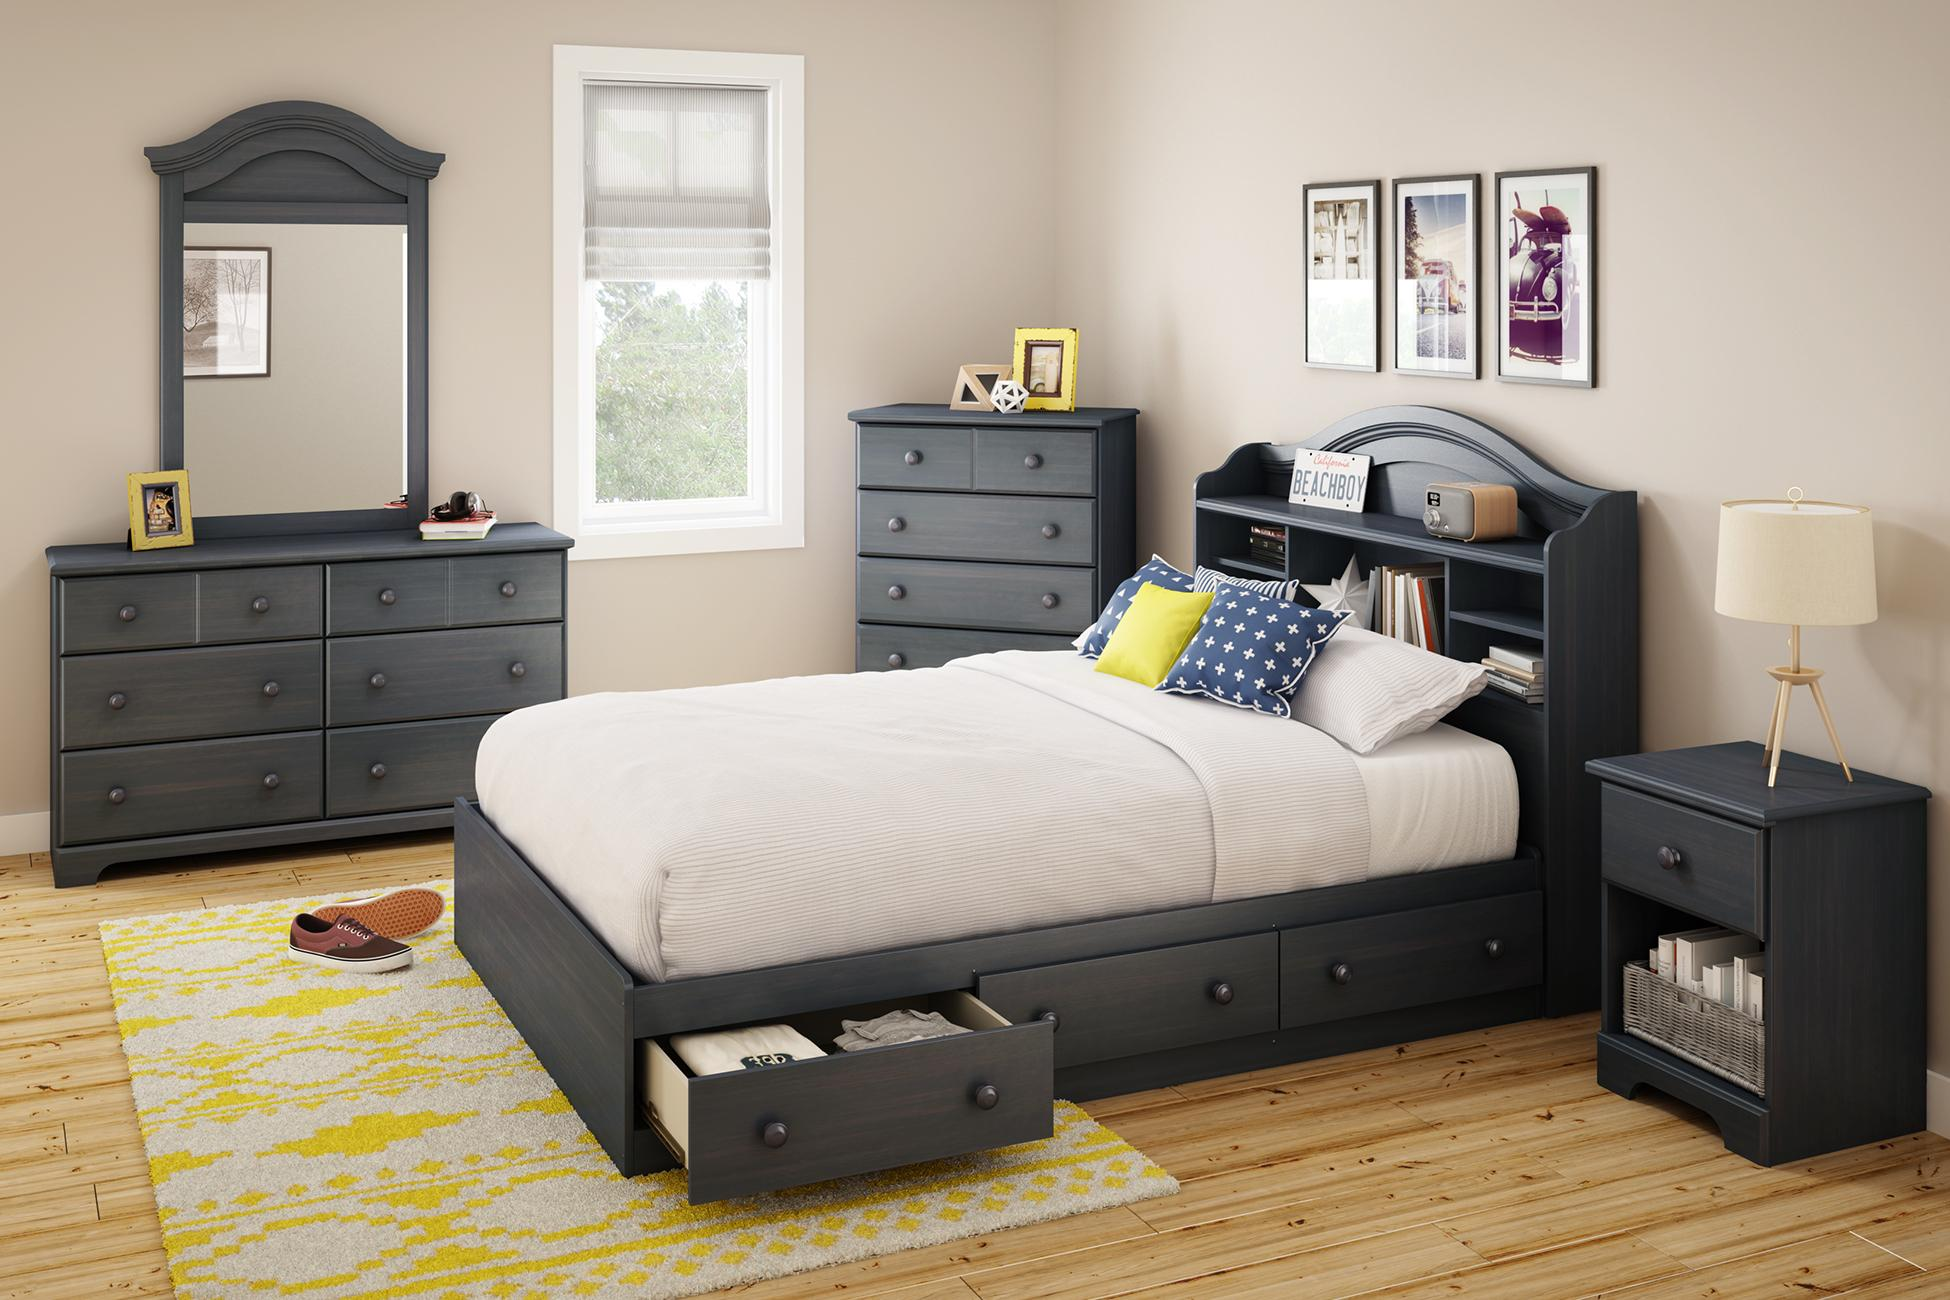 south shore summer breeze bookcase headboard full blueberry  - from the manufacturer